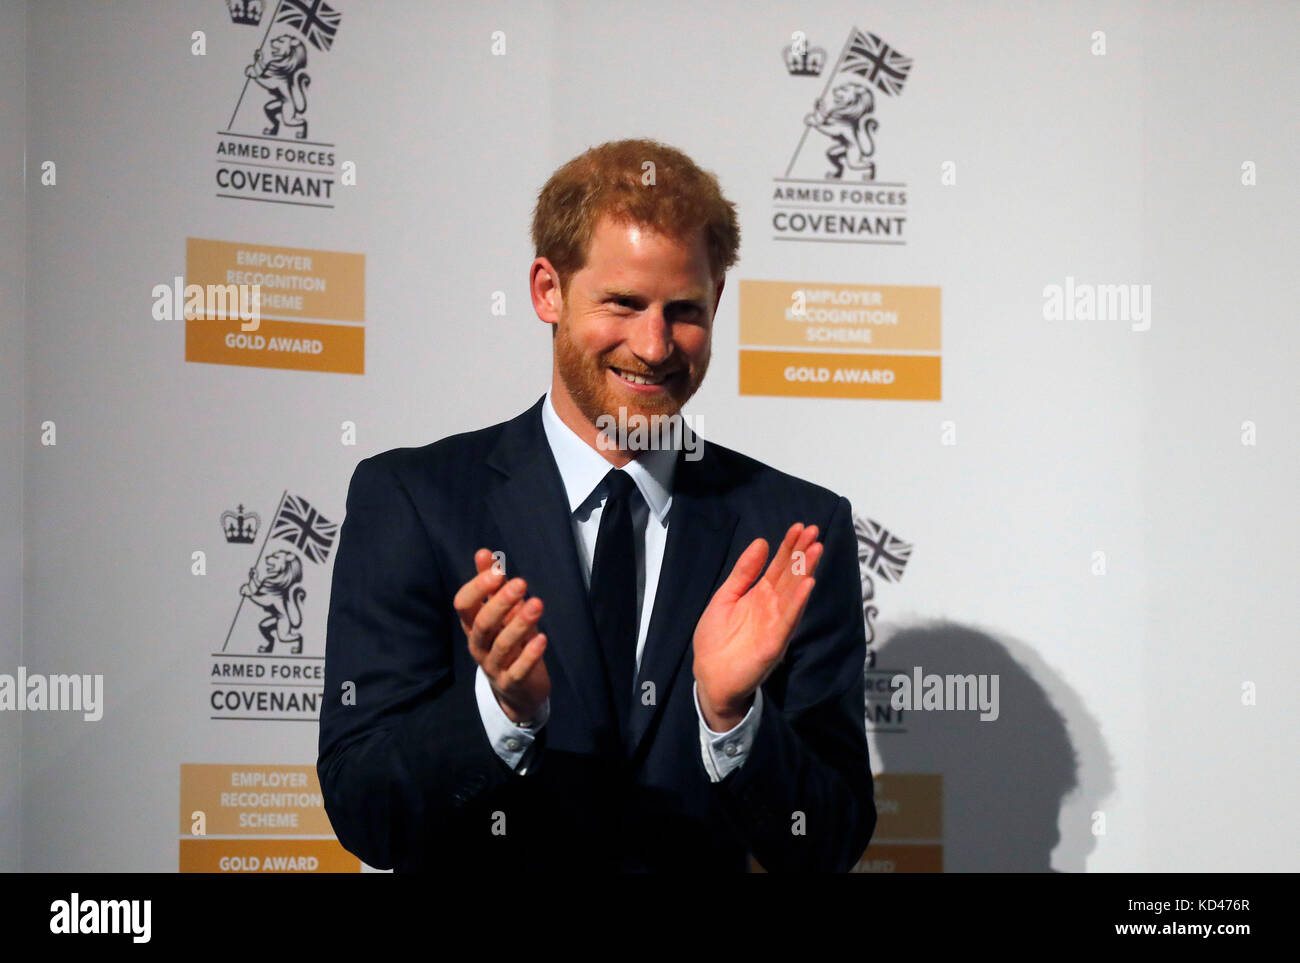 Prince Harry applauds as he presents the Employer Recognition Scheme Gold Awards at the Imperial War Museum in London, - Stock Image